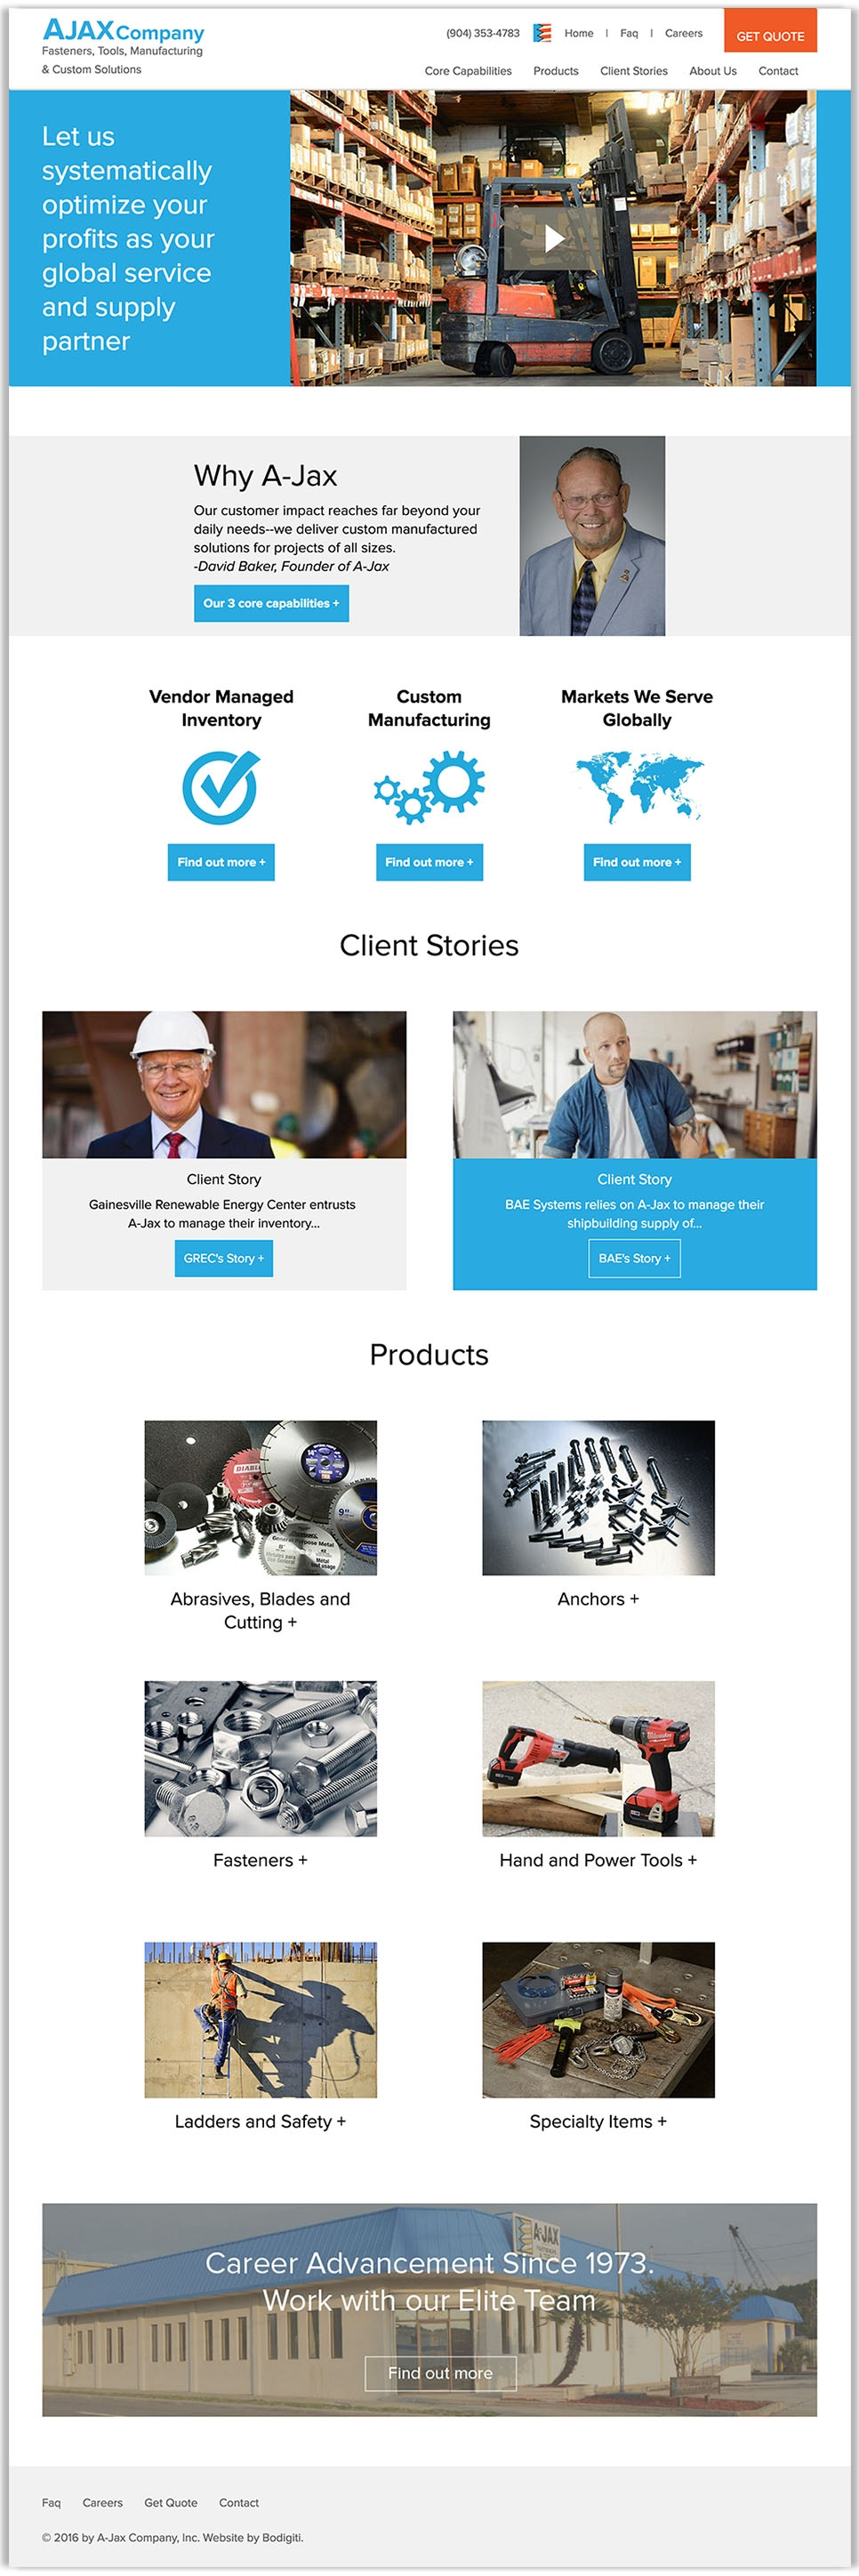 Ajax Company's full homepage design, a manufacturer of fasteners, tools, and equipment